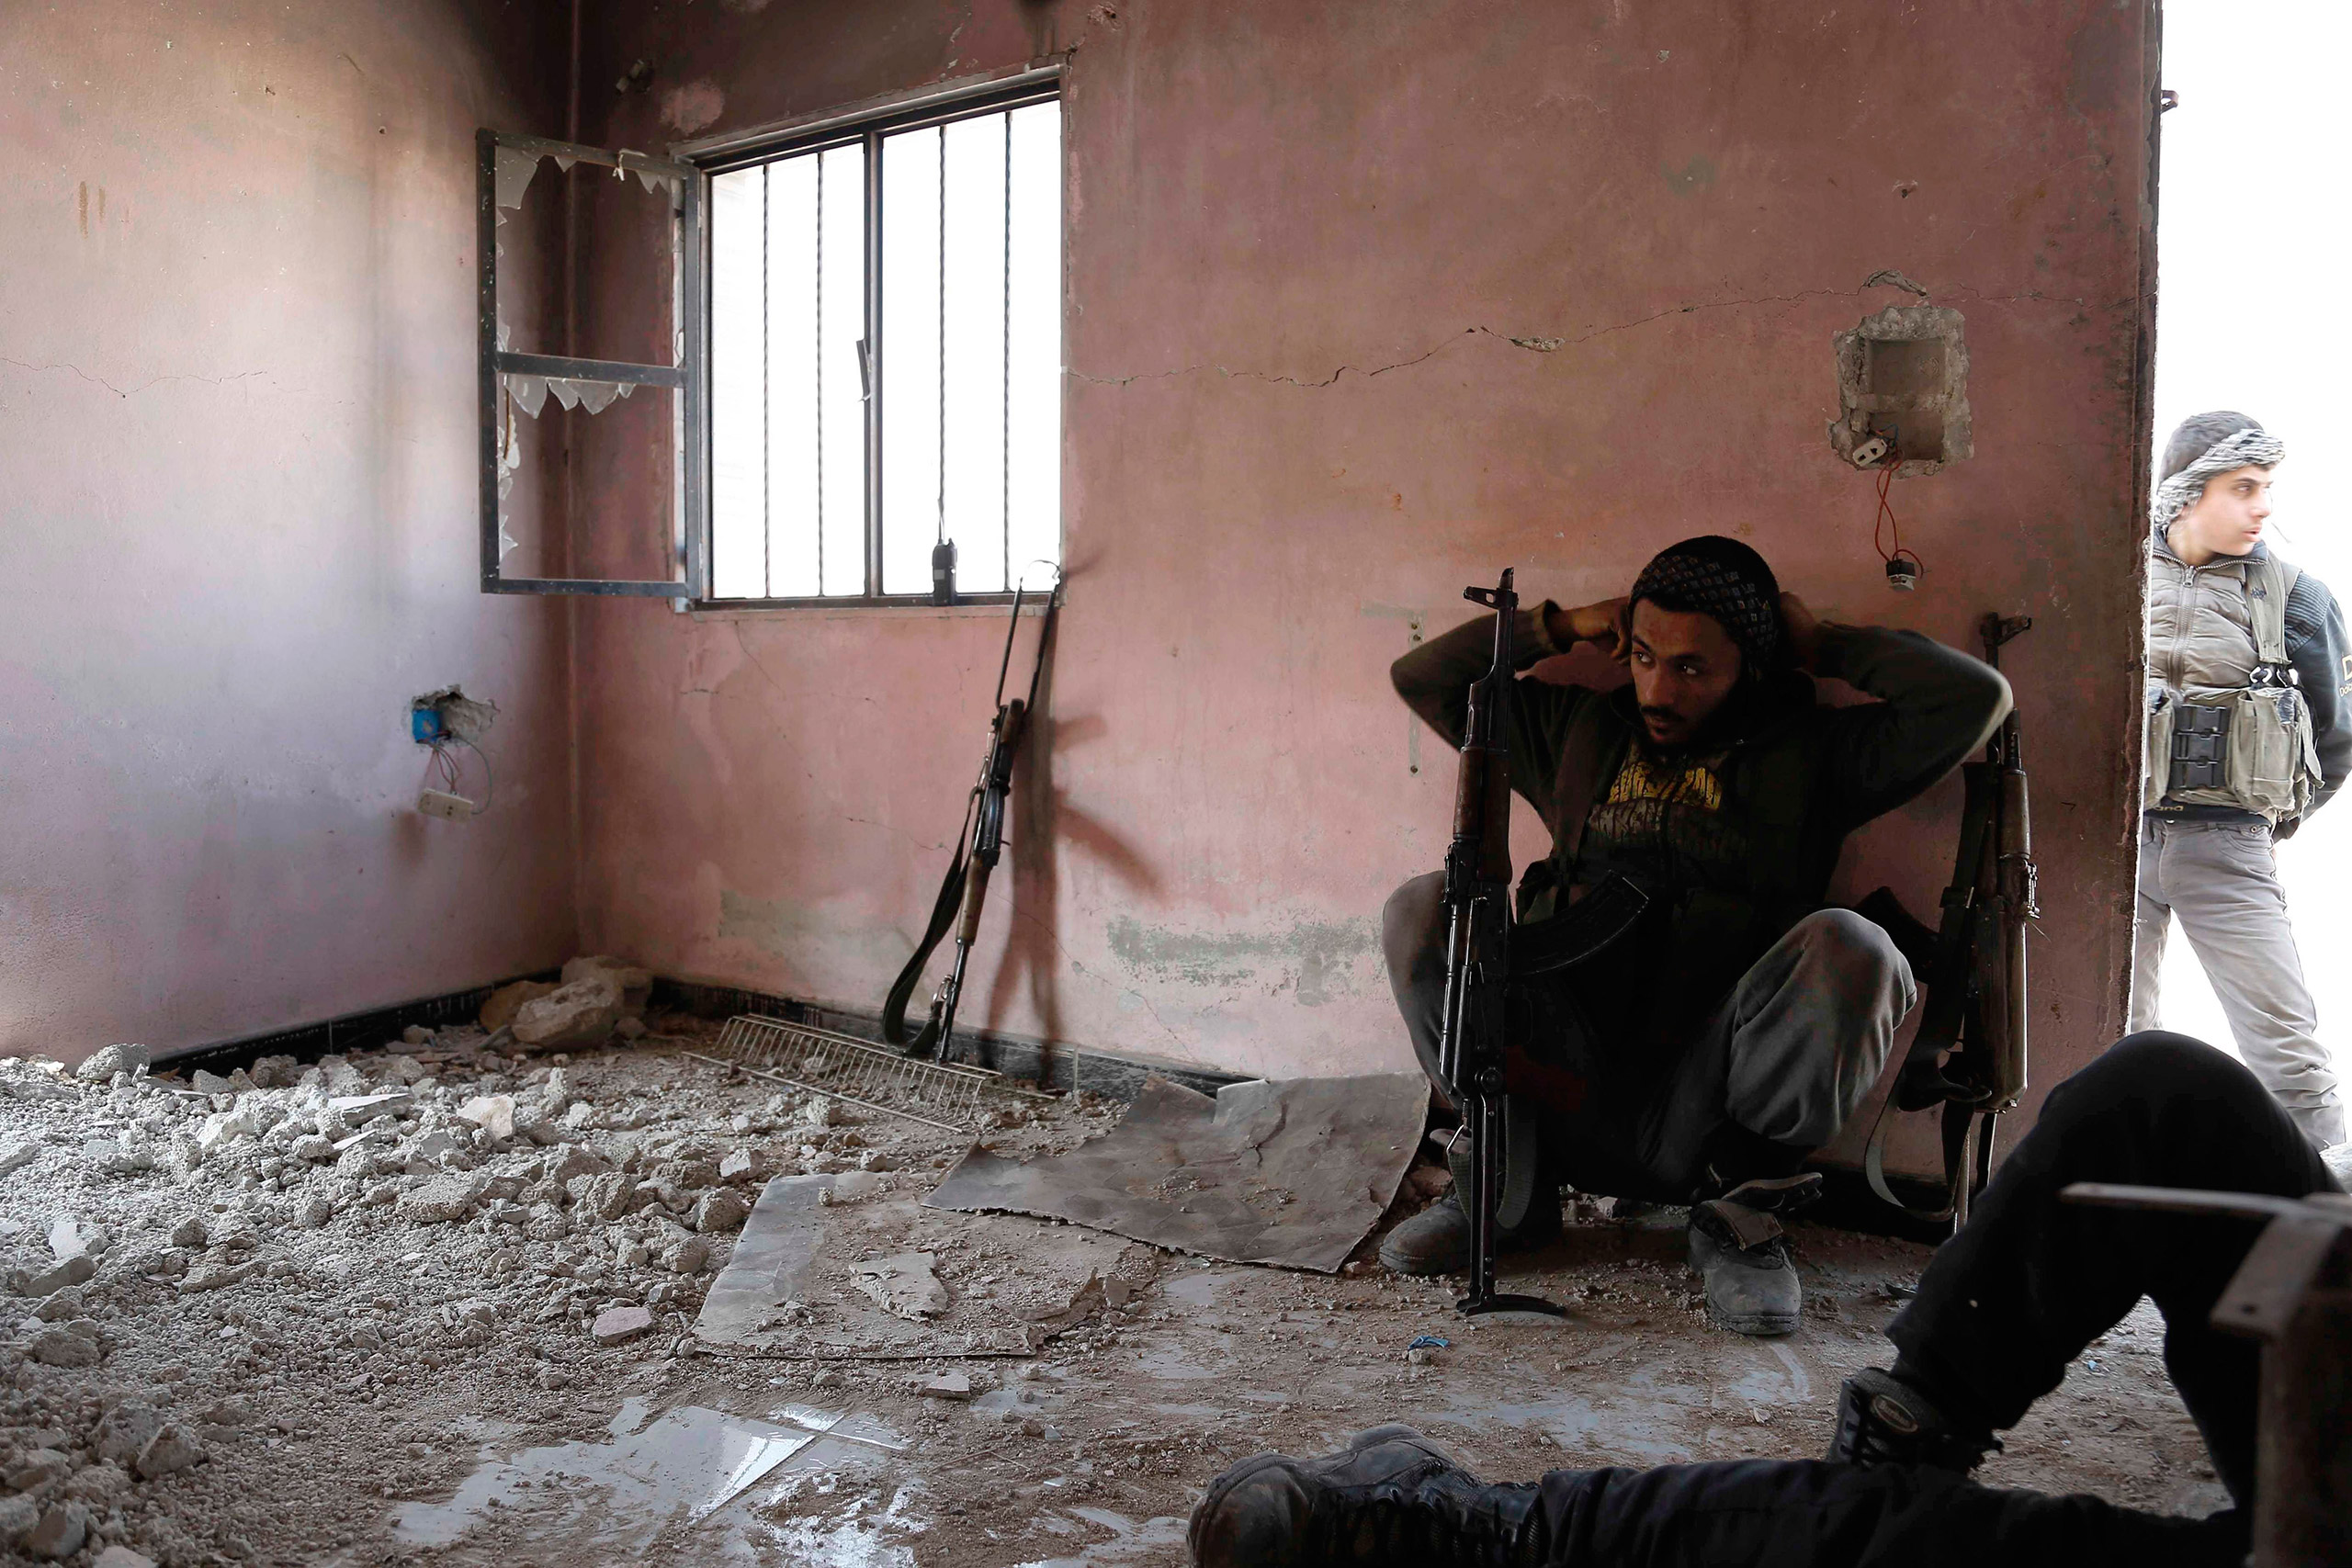 Rebel fighters from the Failaq al-Rahman brigade take a break as they hide inside a building on the frontline against regime forces in the rebel-controlled village of Bala, on the outskirts of Damascus, Syria, Feb. 28, 2016.